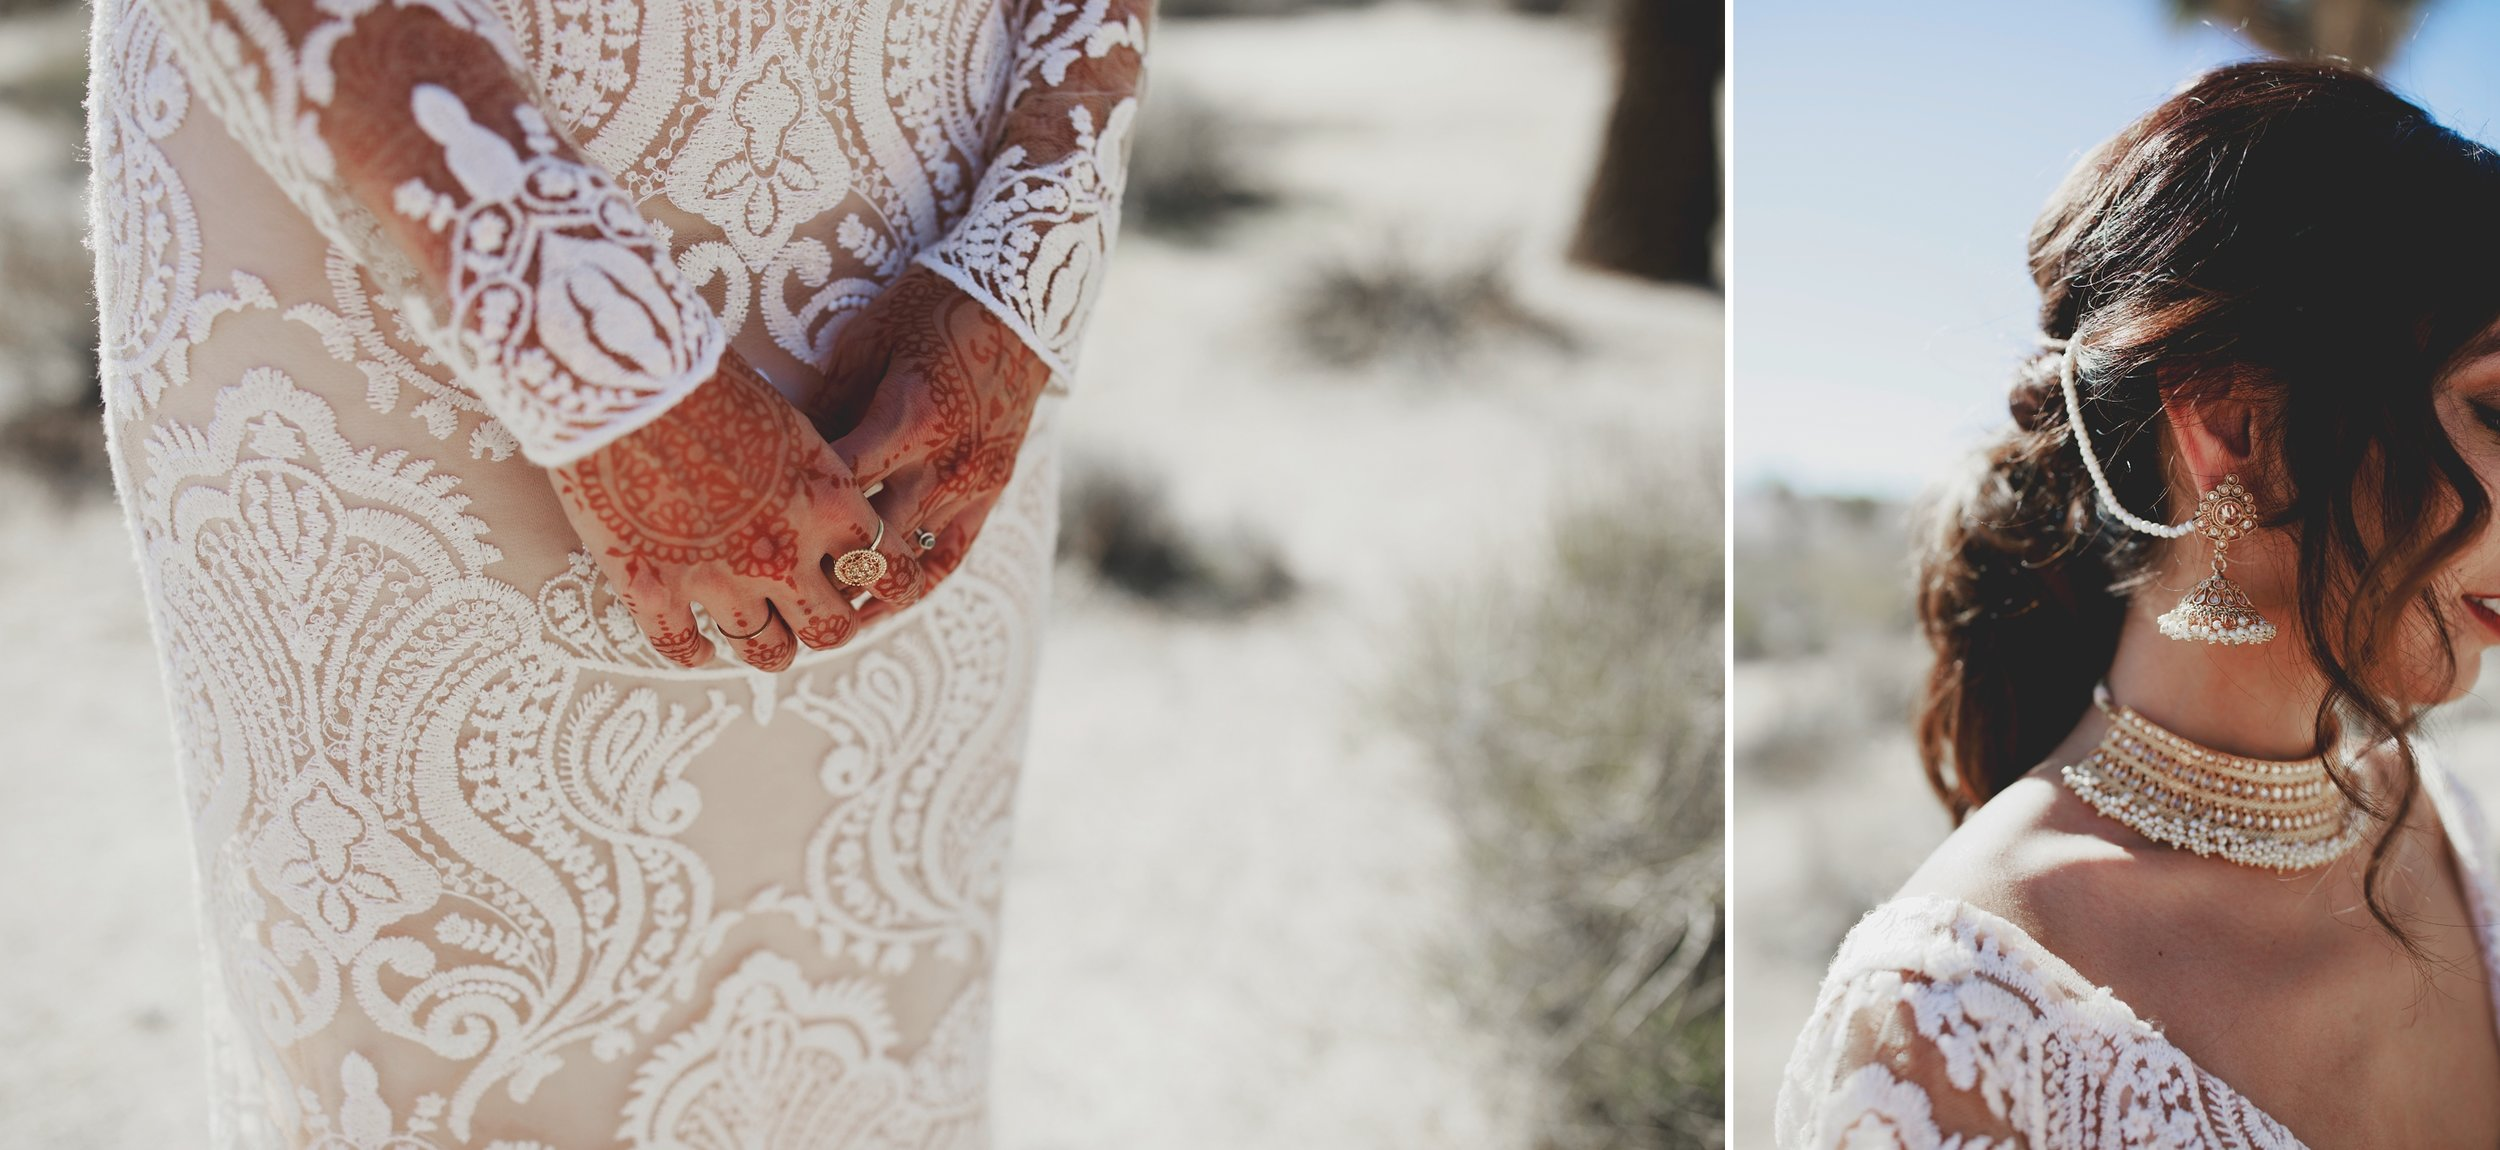 amanda_vanvels_joshua_tree_inn_wedding_052.jpg